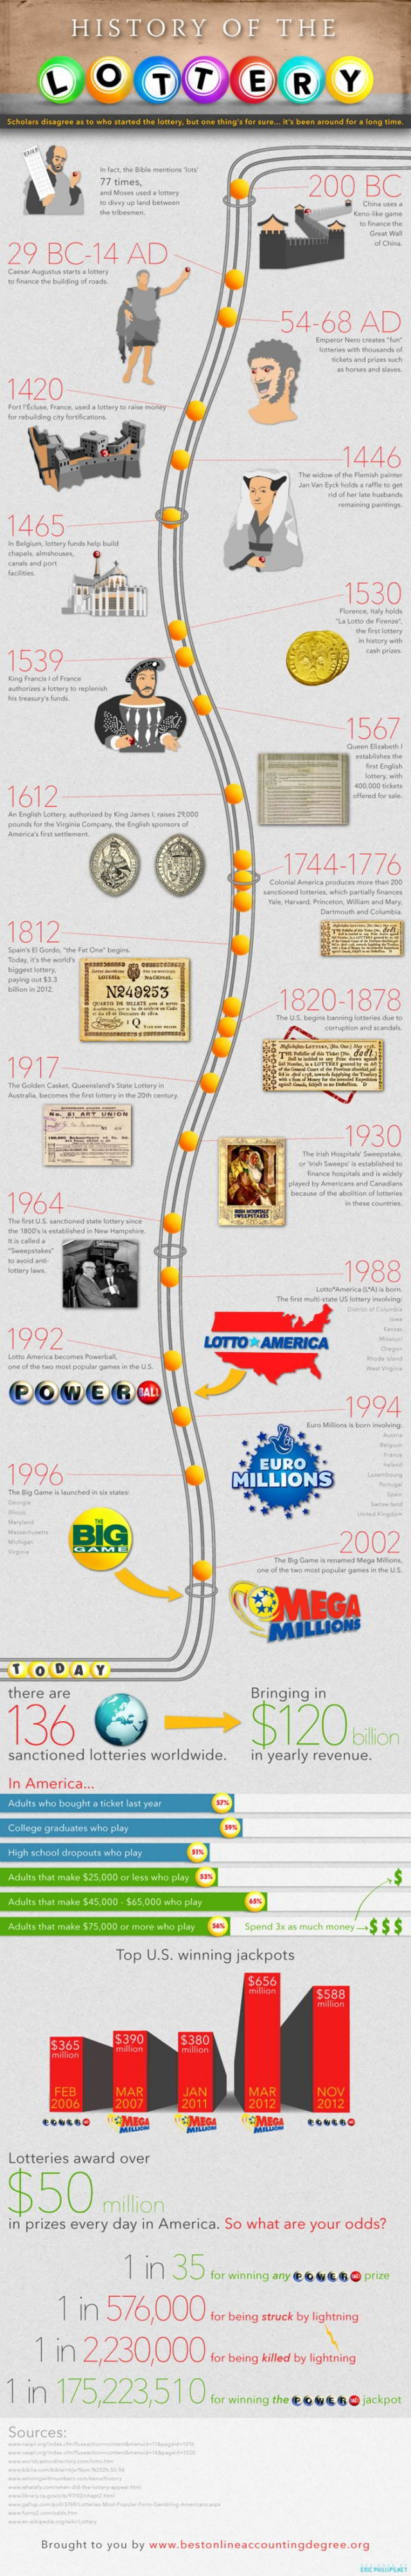 History of the Lottery